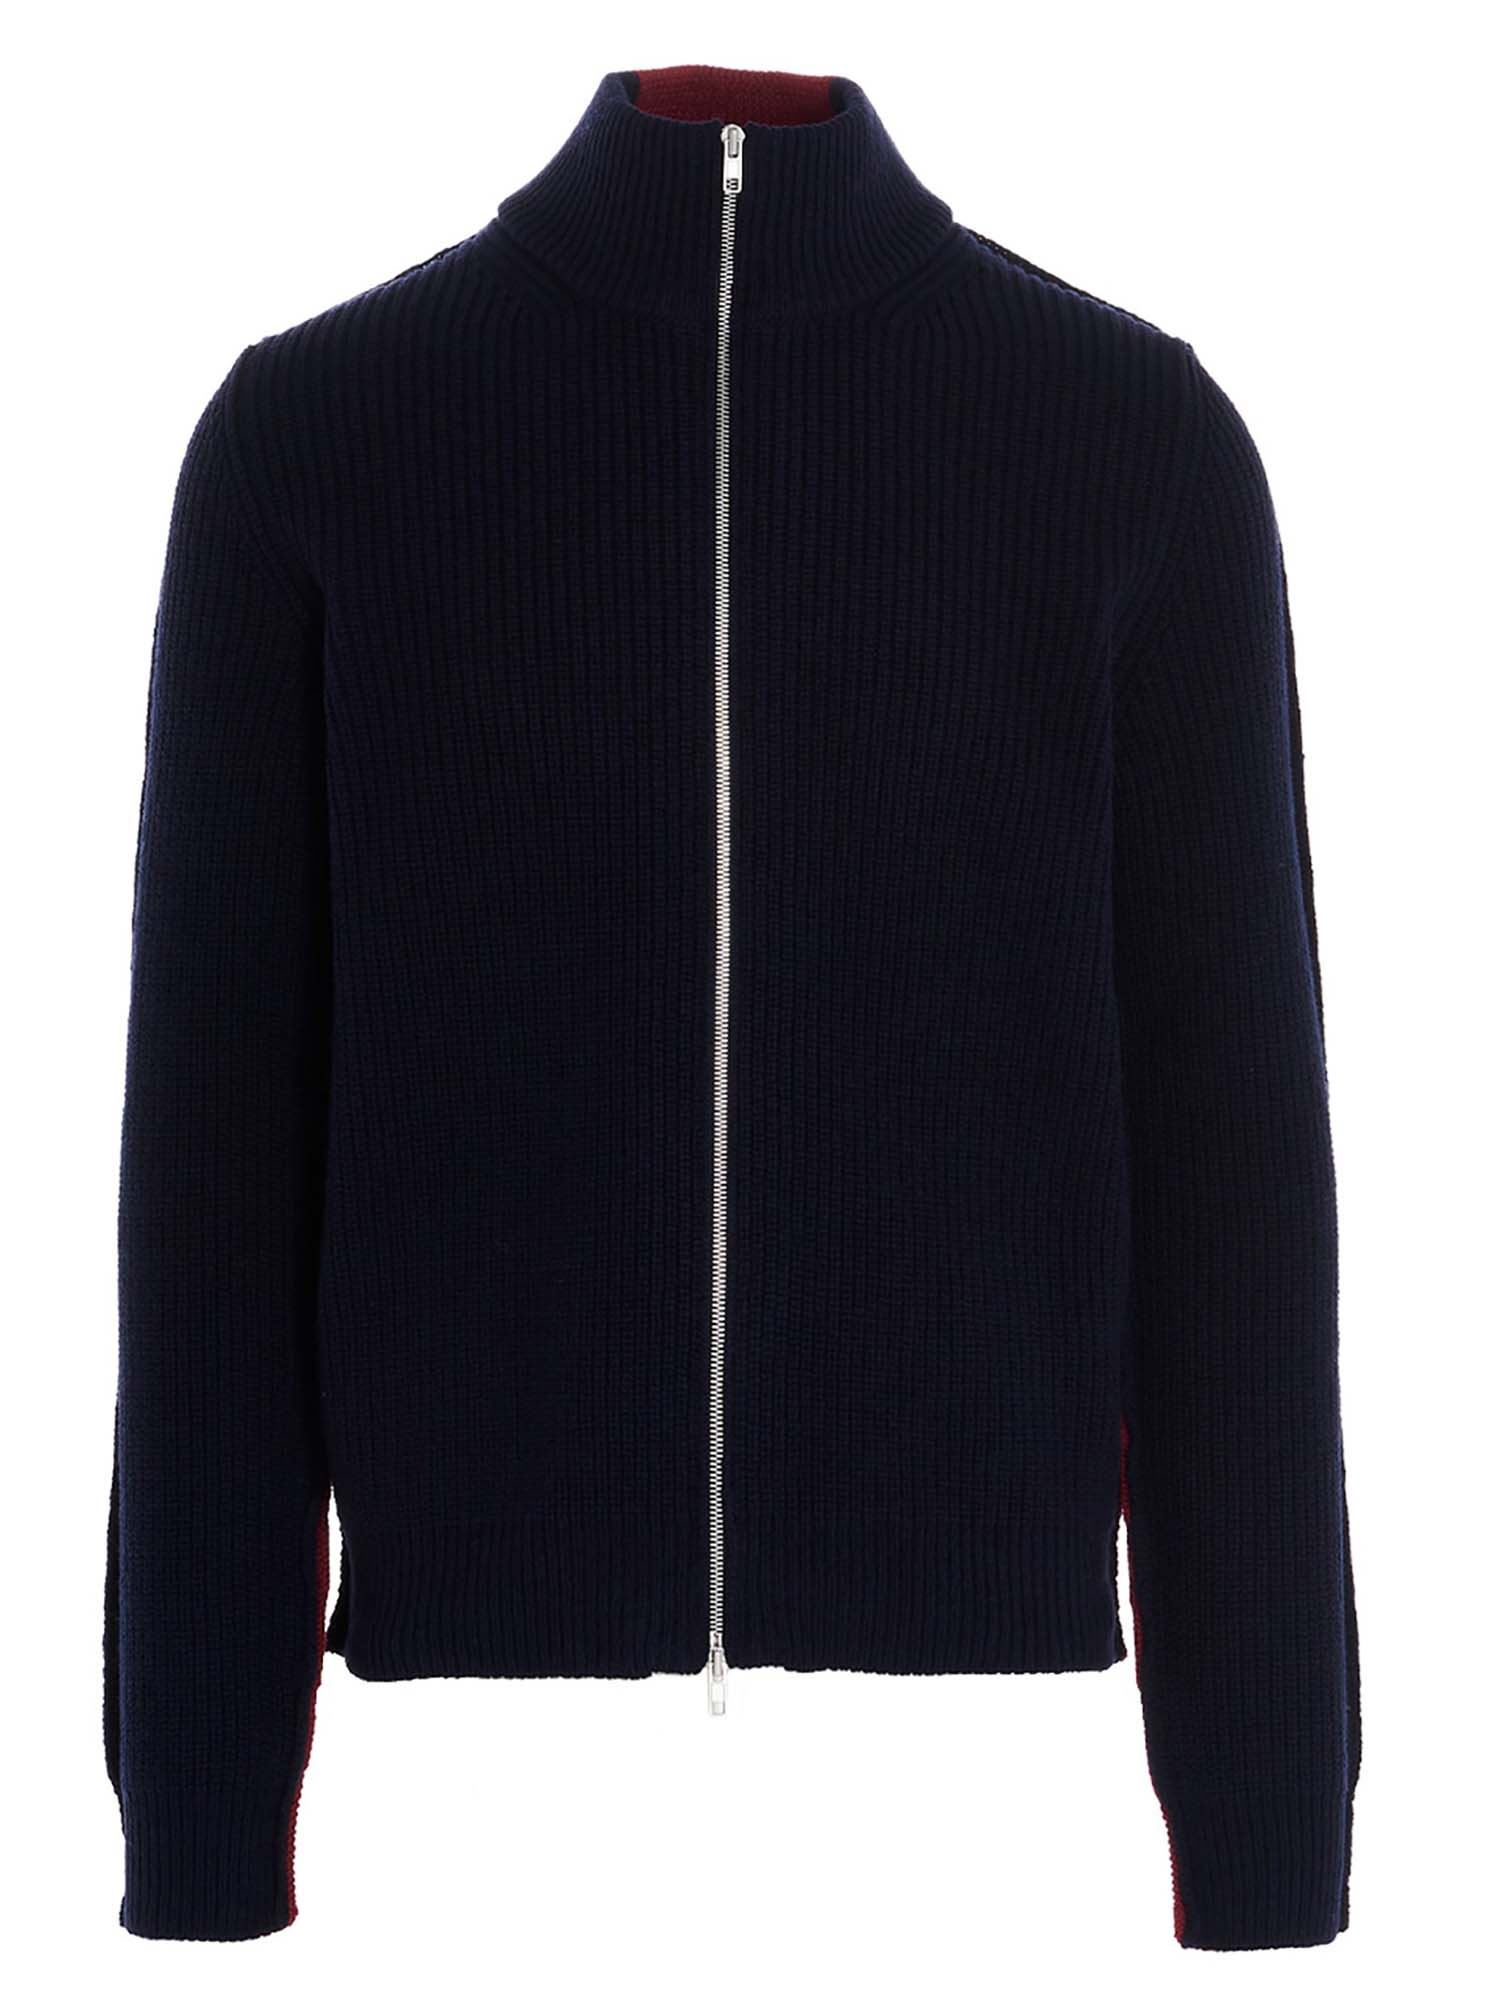 Maison Margiela TWO-TONE ZIP CARDIGAN IN BLUE AND RED